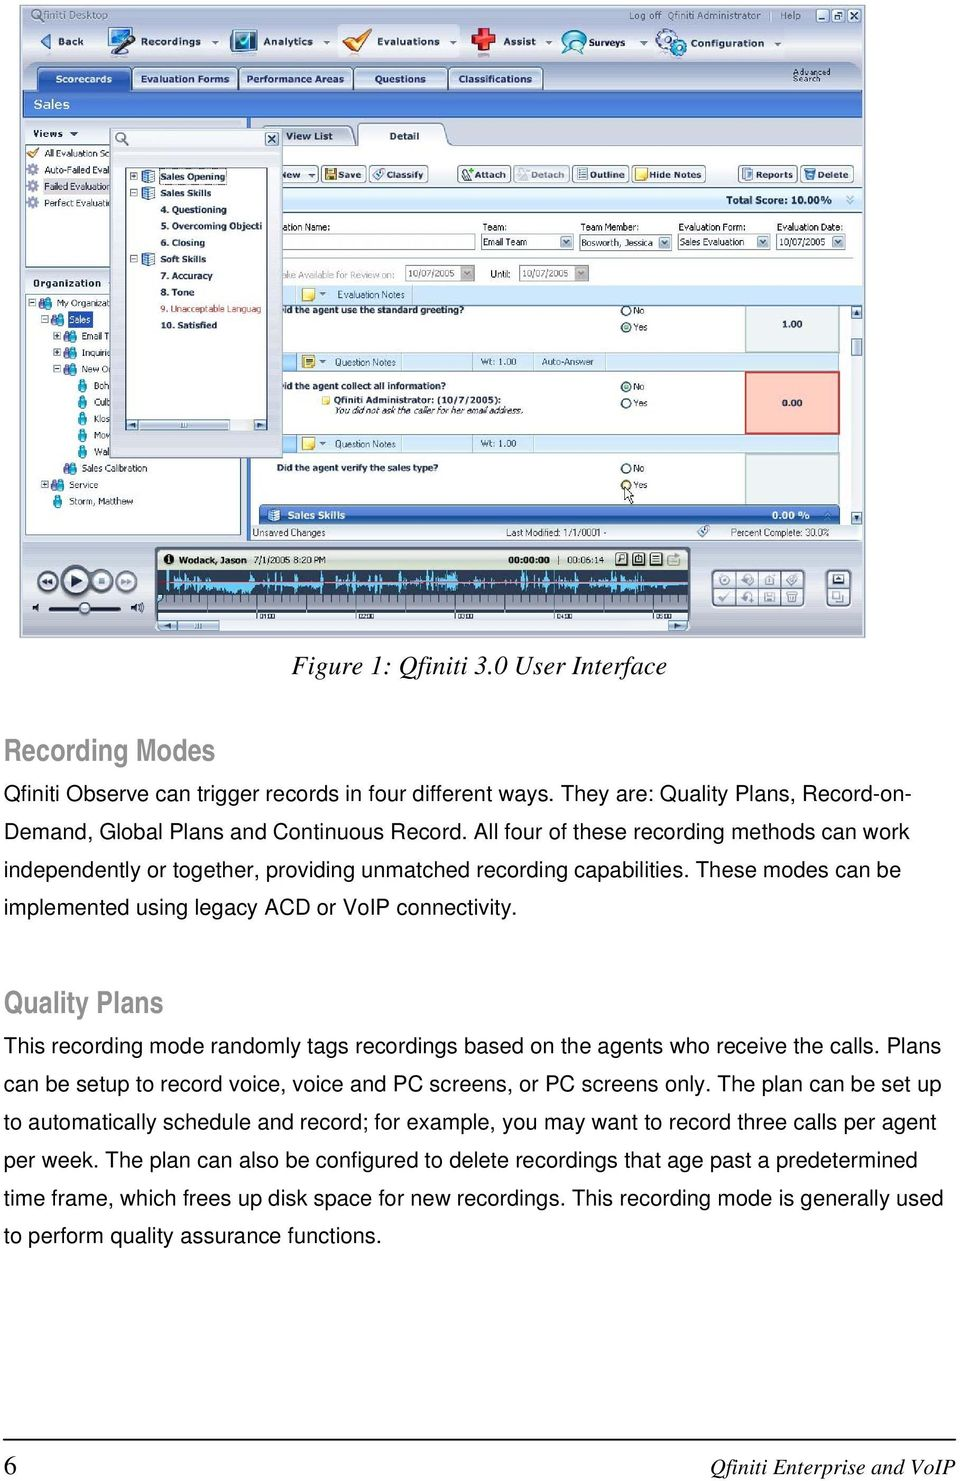 Quality Plans This recording mode randomly tags recordings based on the agents who receive the calls. Plans can be setup to record voice, voice and PC screens, or PC screens only.